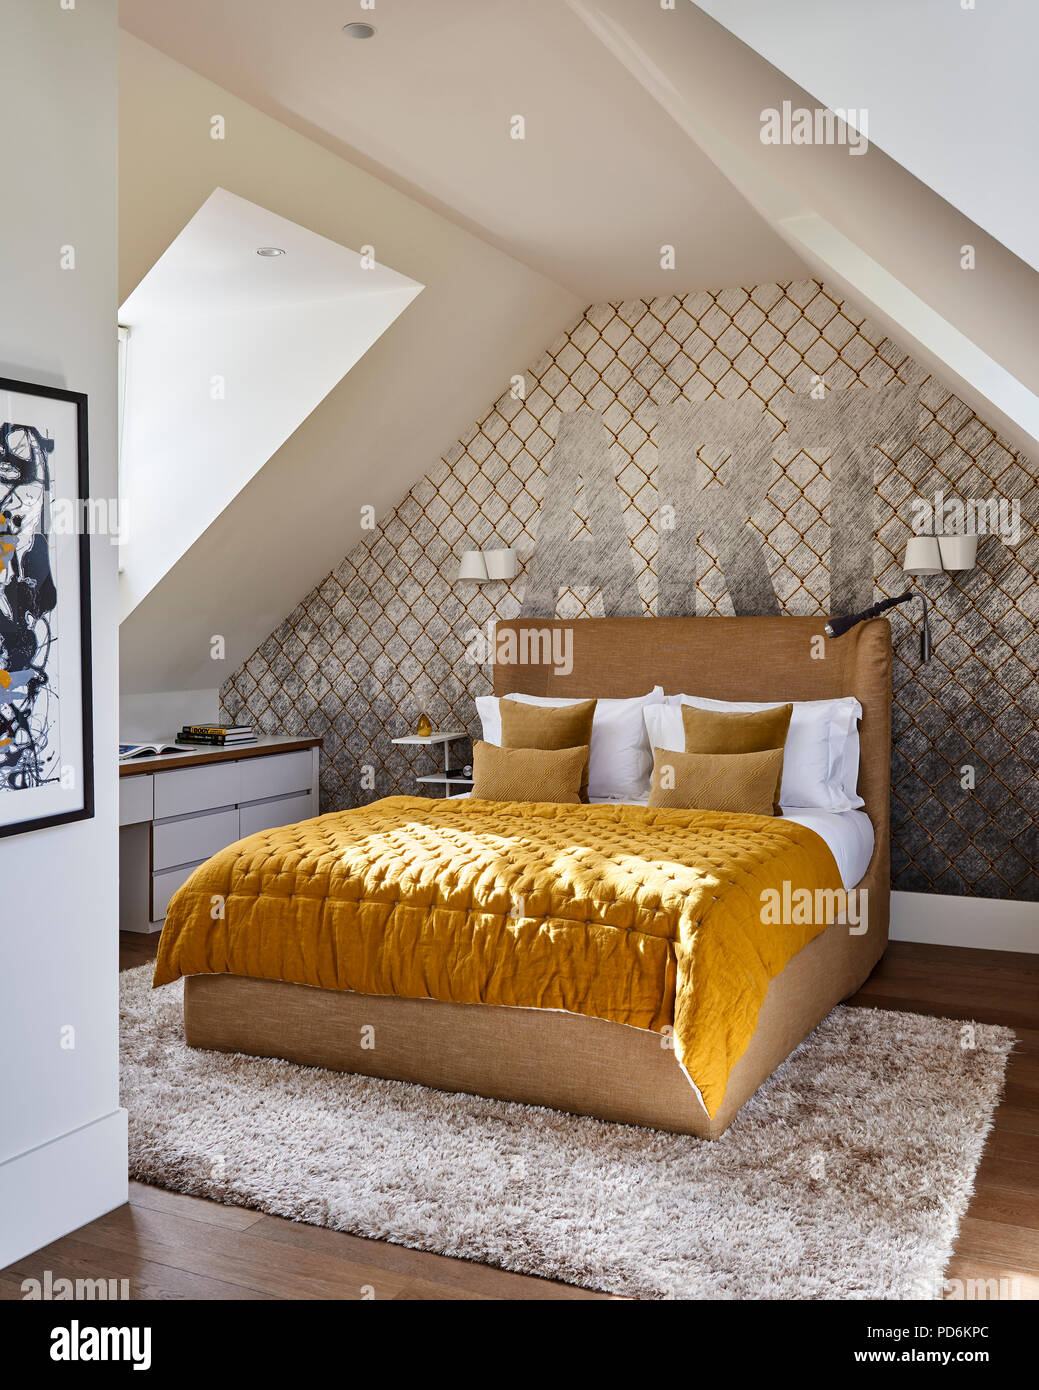 Yellow buttoned quilt on double bed below single word 'ART'. Stock Photo